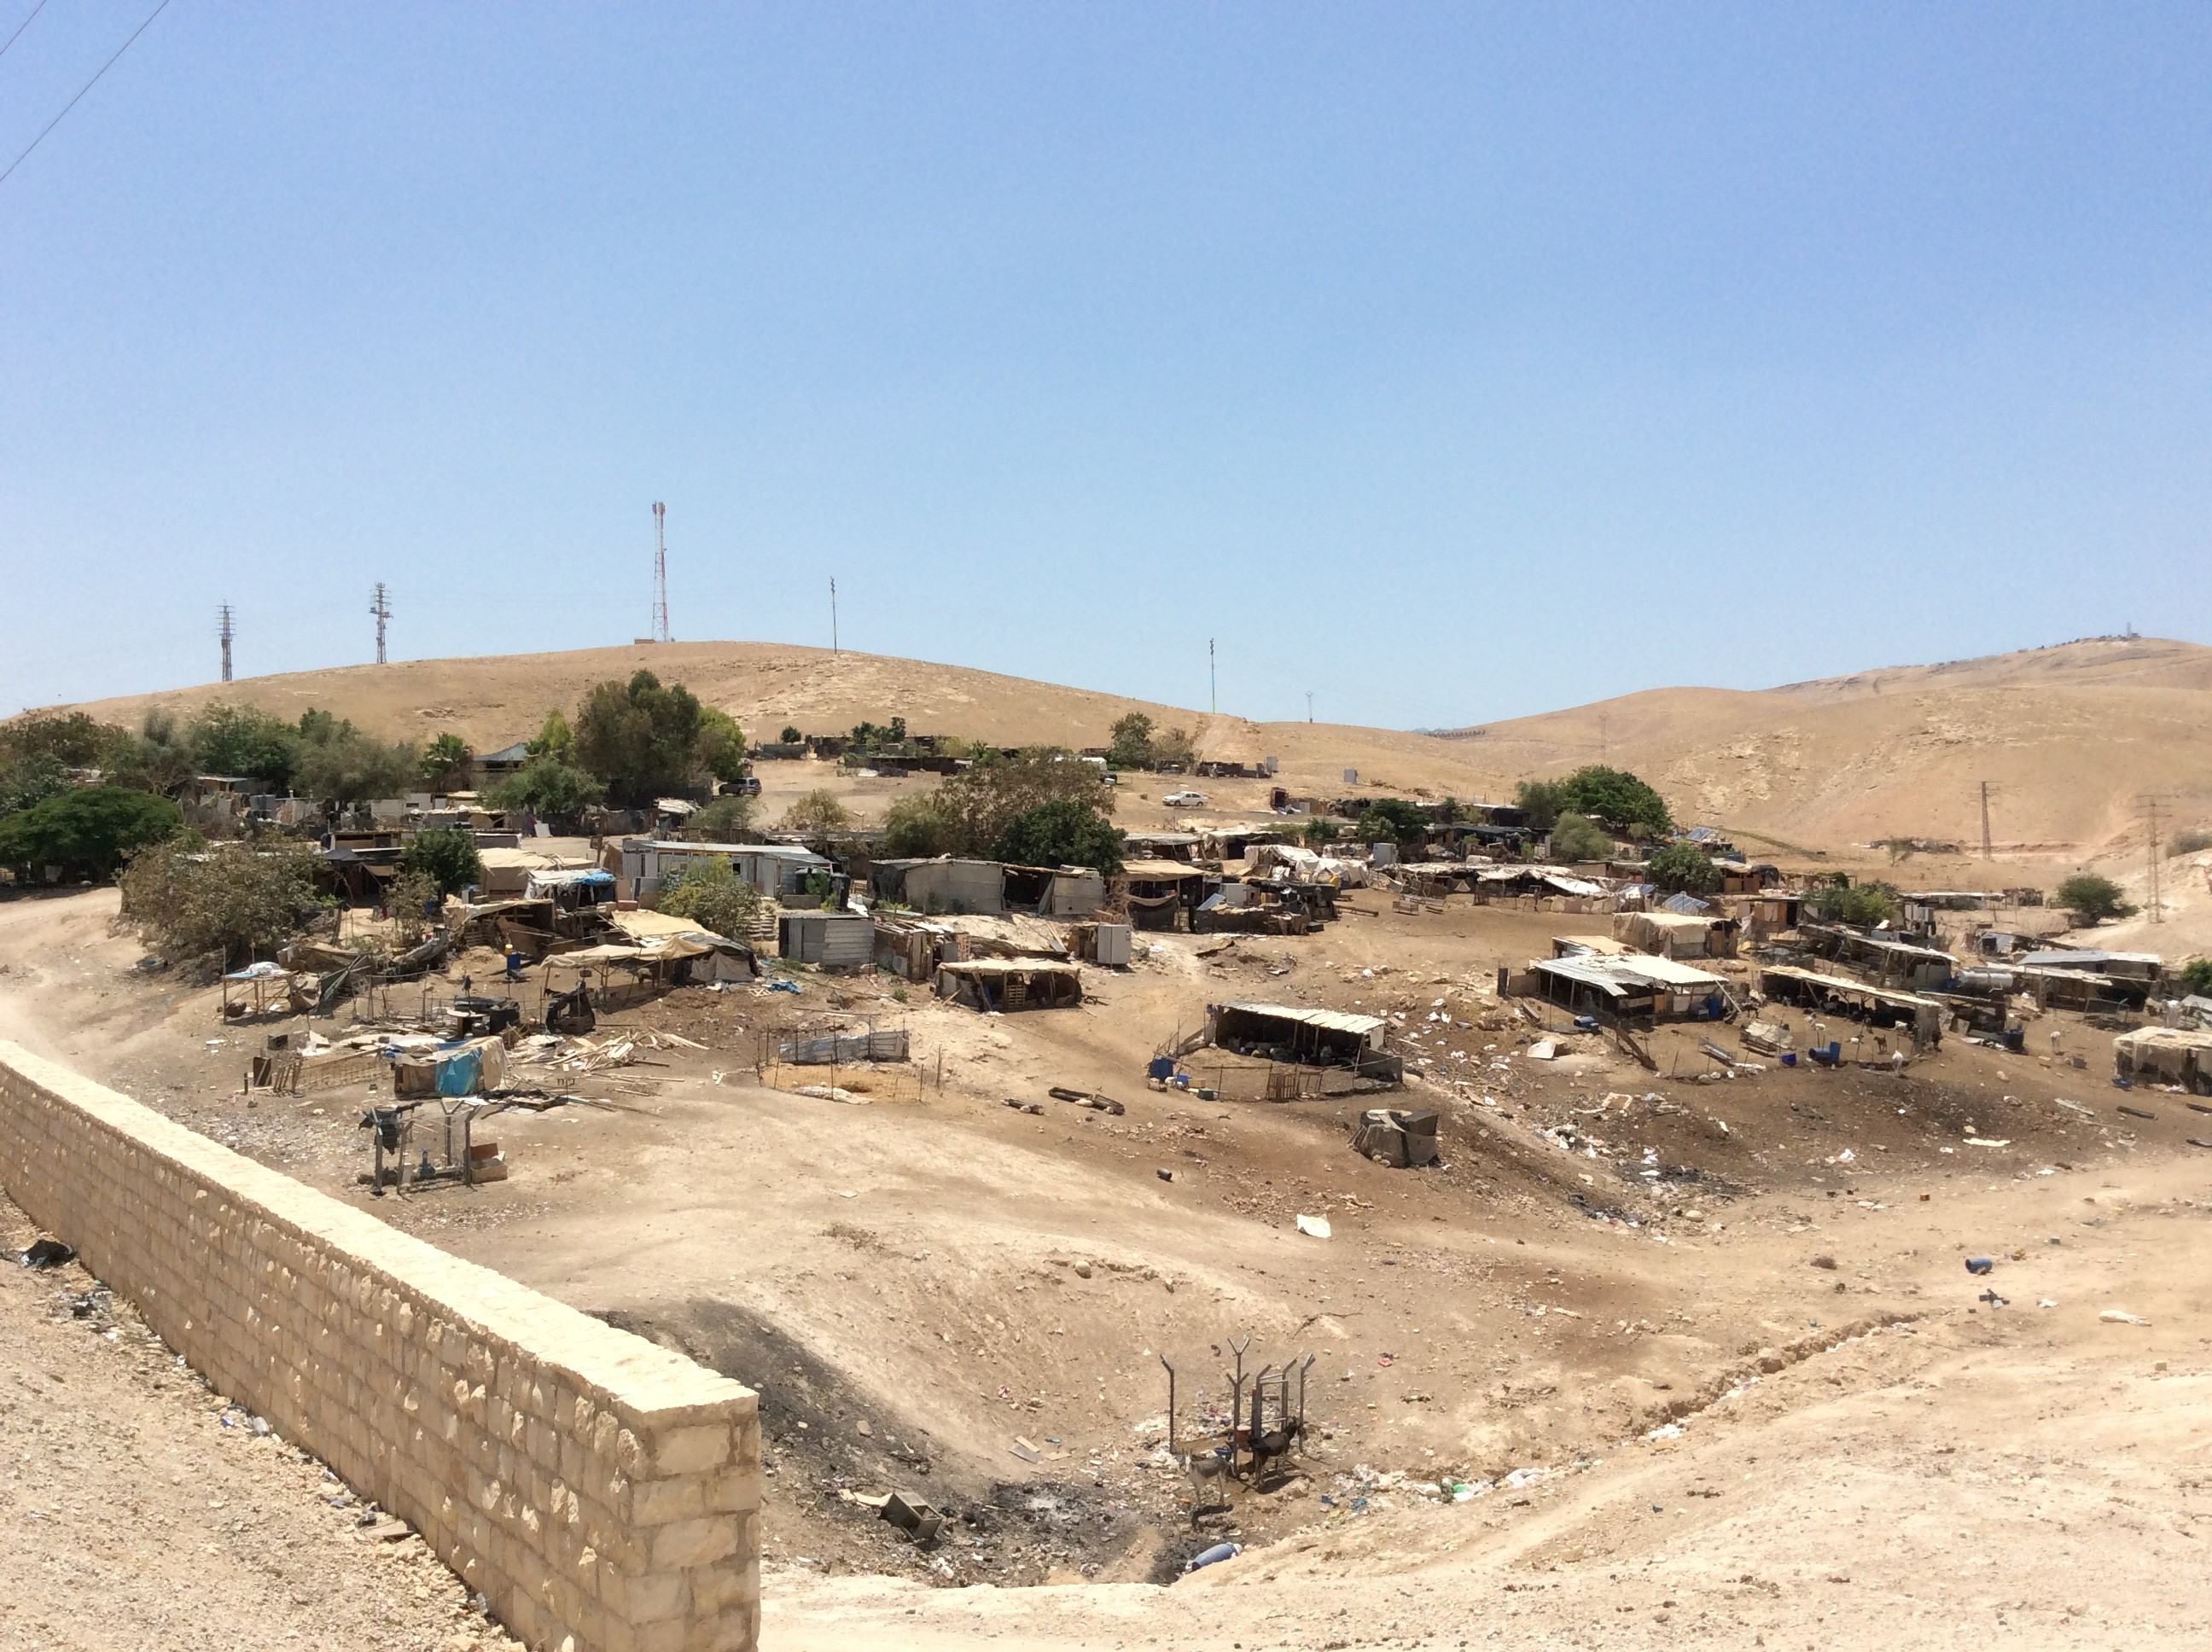 The tiny Bedouin enclave of Khan Al Ahmar. Israel's High Court has ruled that the village can be demolished and its inhabitants relocated to a site next to a Jerusalem landfill.